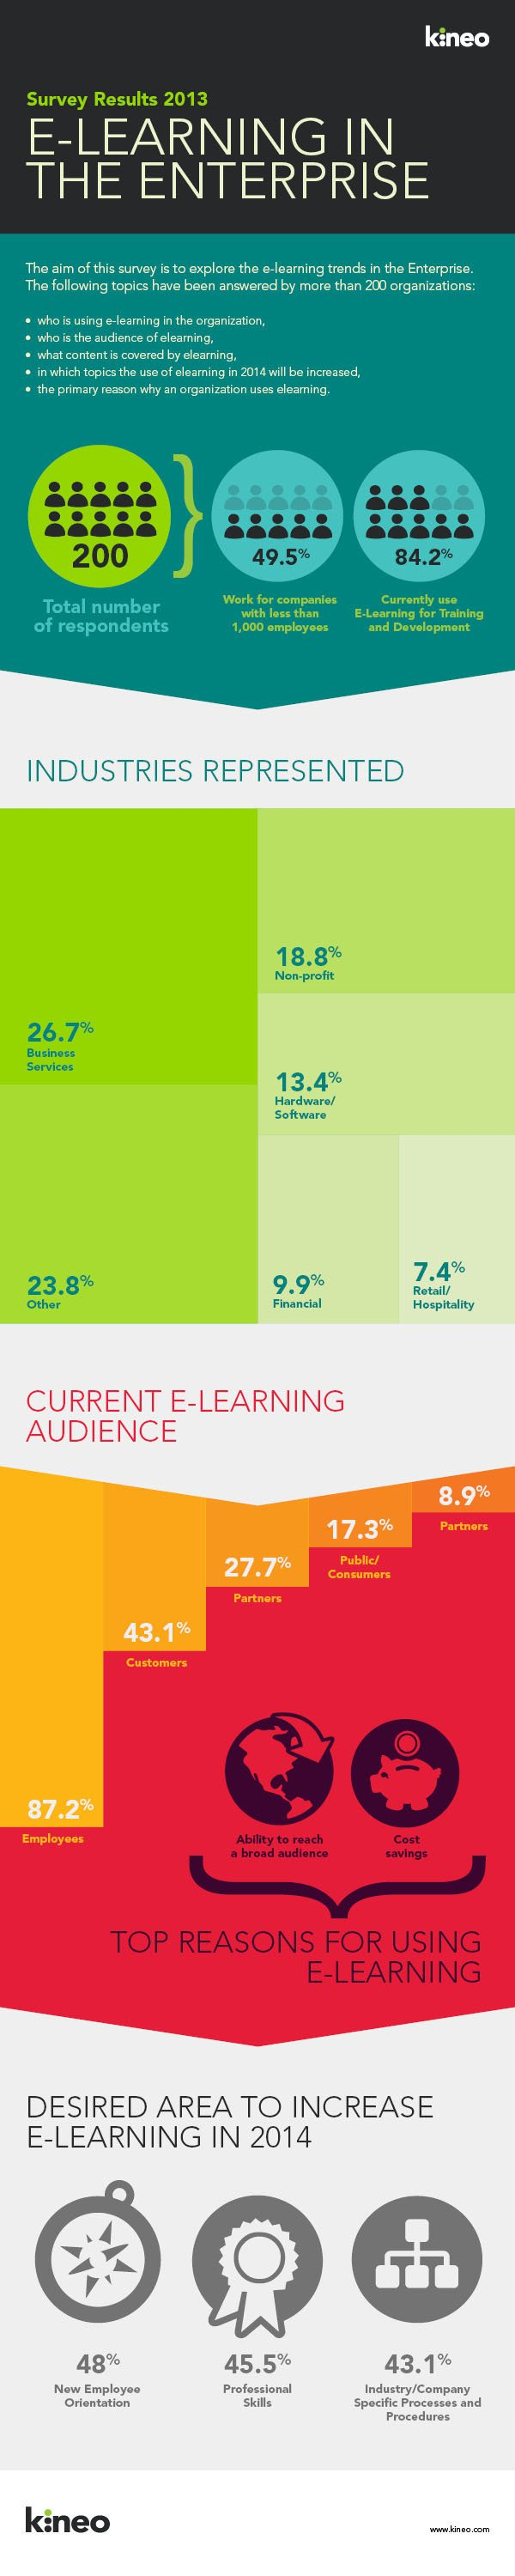 E-Learning in the Enterprise Infographic